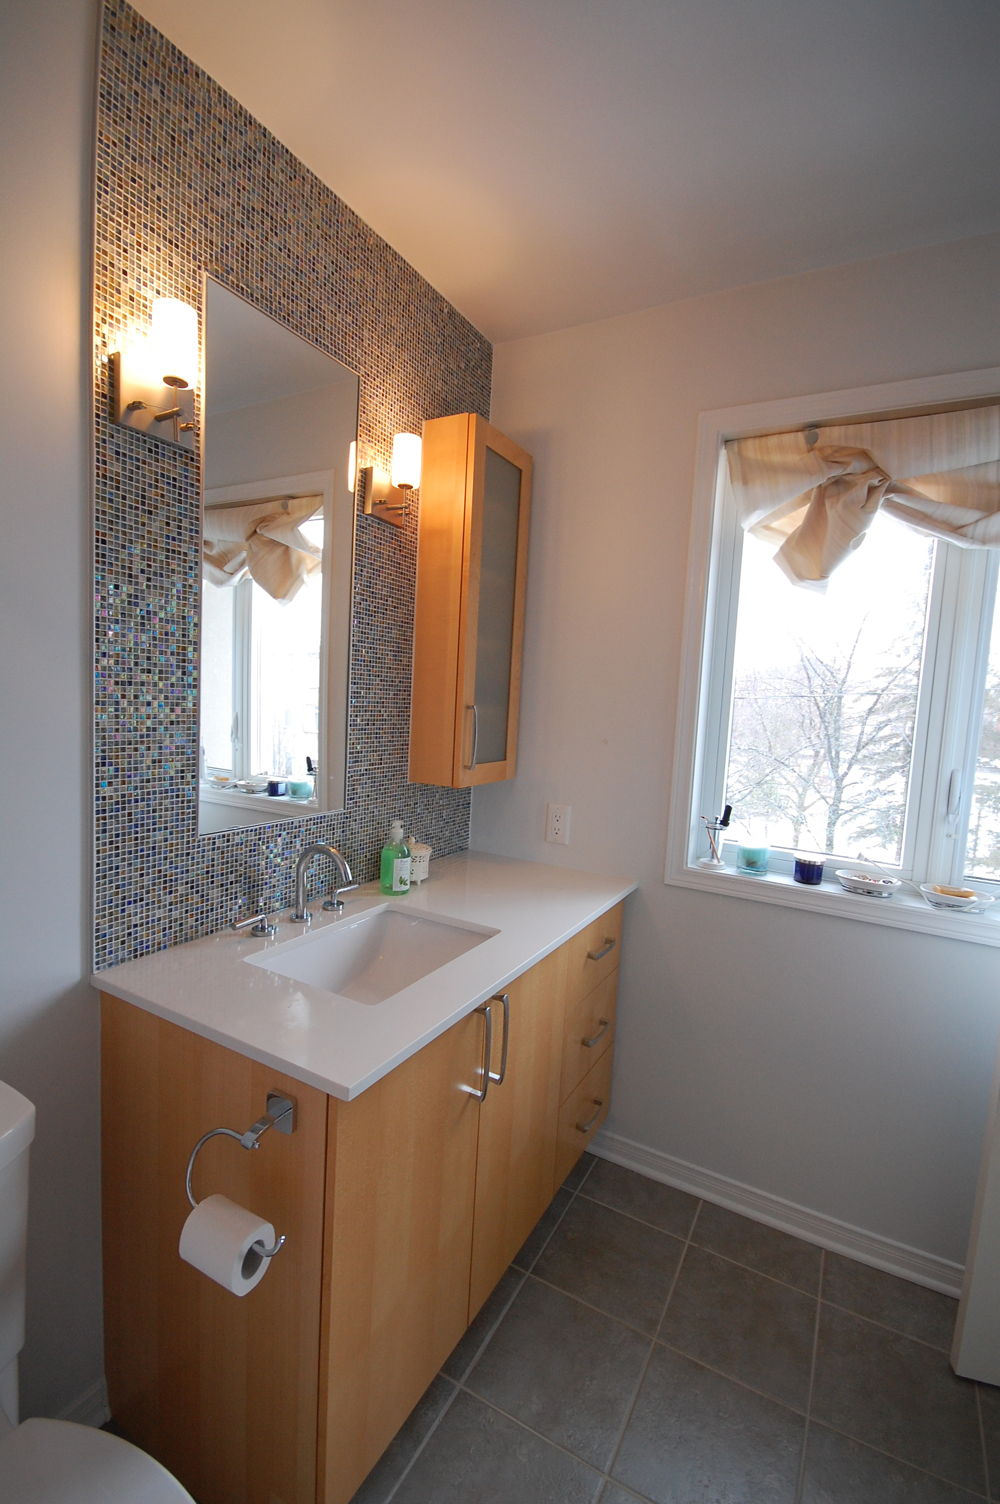 Bathroom sink mosaic tile kitchens and bathrooms first for First bathrooms